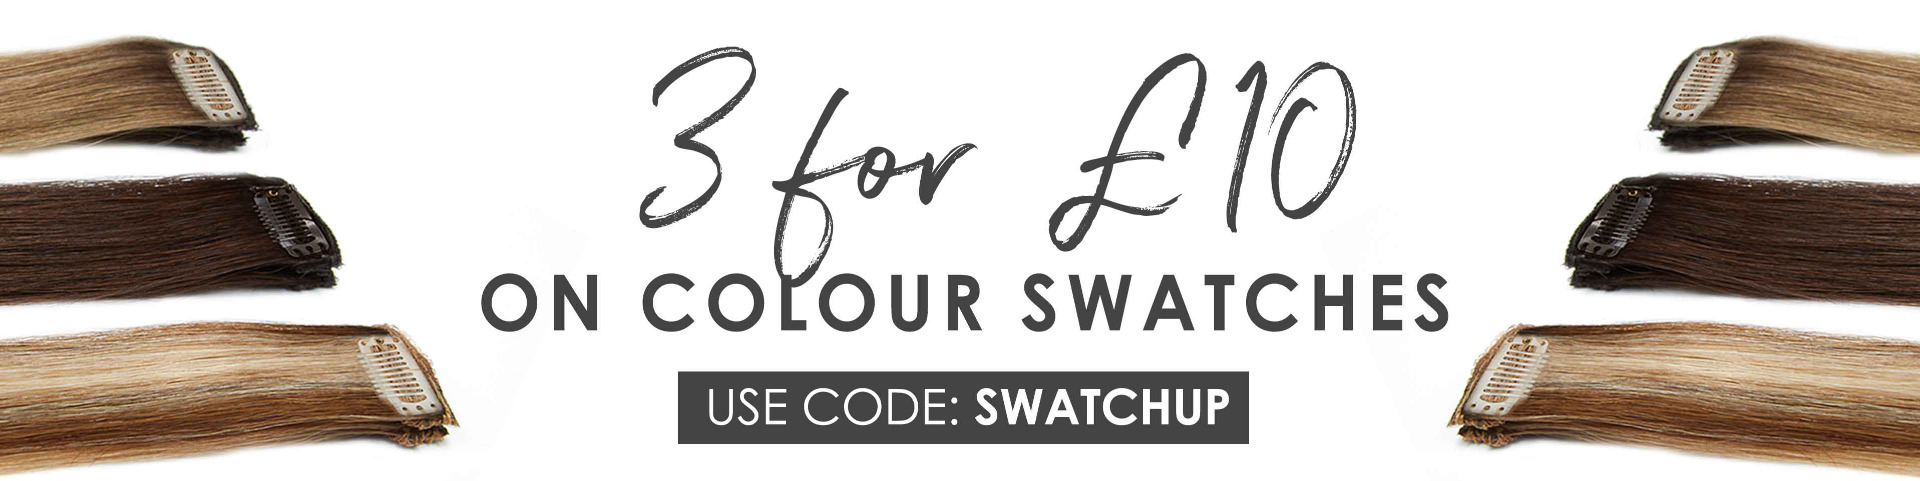 3 for £10 Colour Swatches